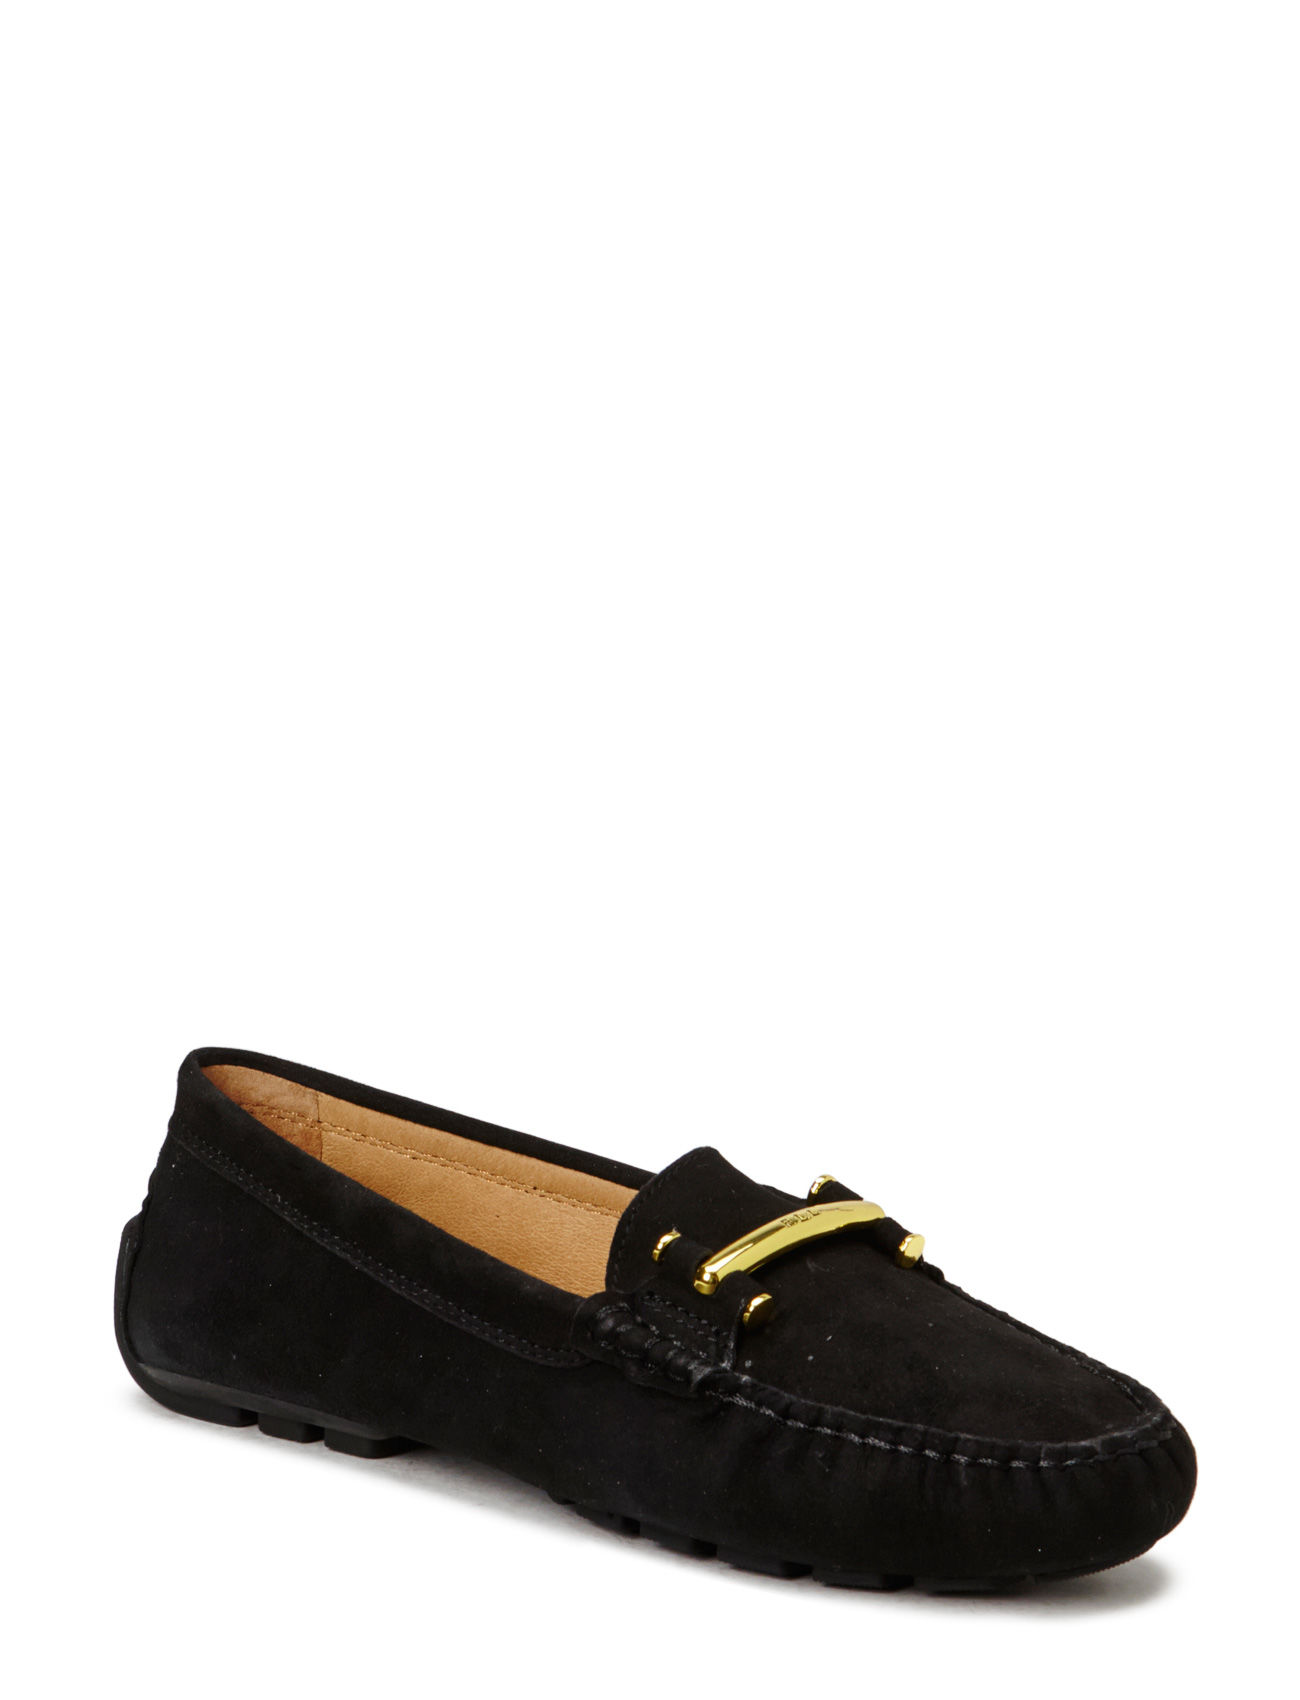 Lauren Ralph Lauren Suede Caliana Loafer